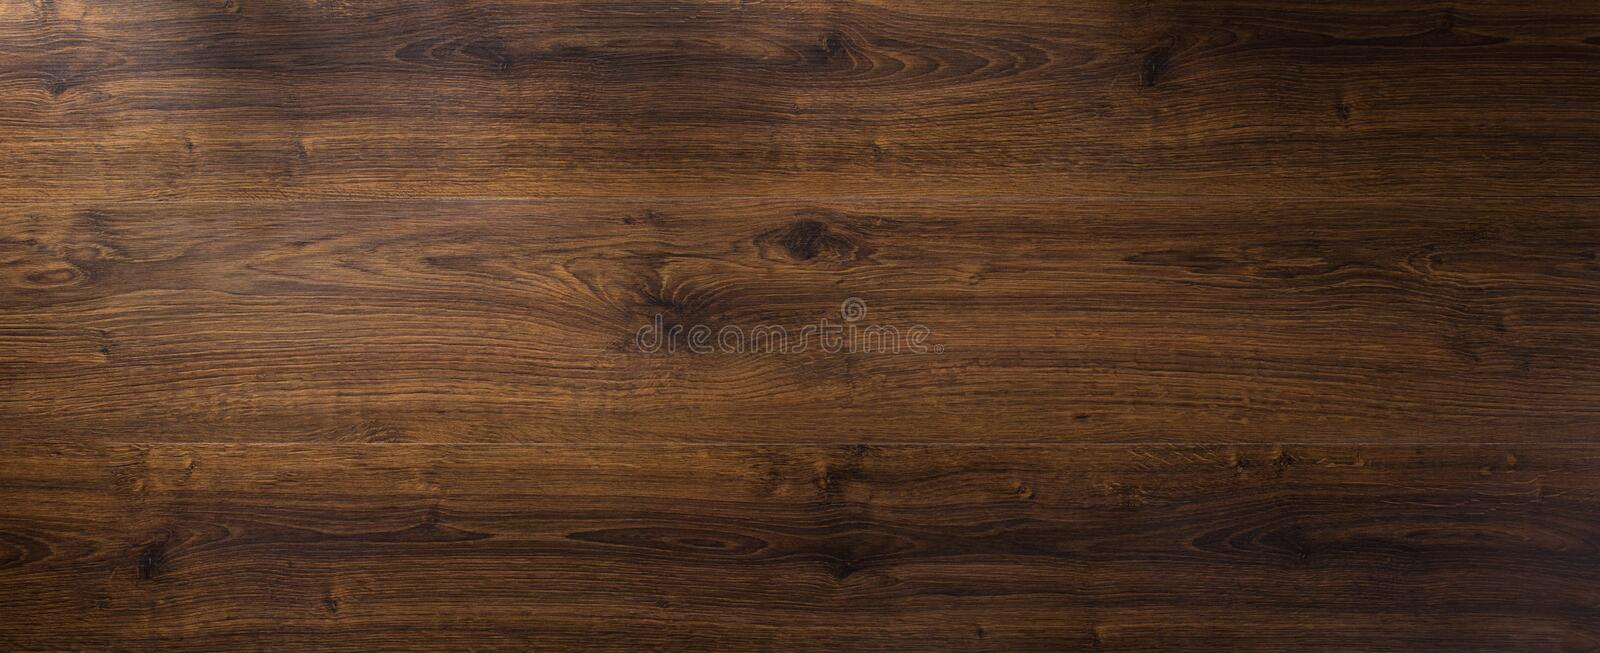 Laminate floor background texture royalty free stock photography